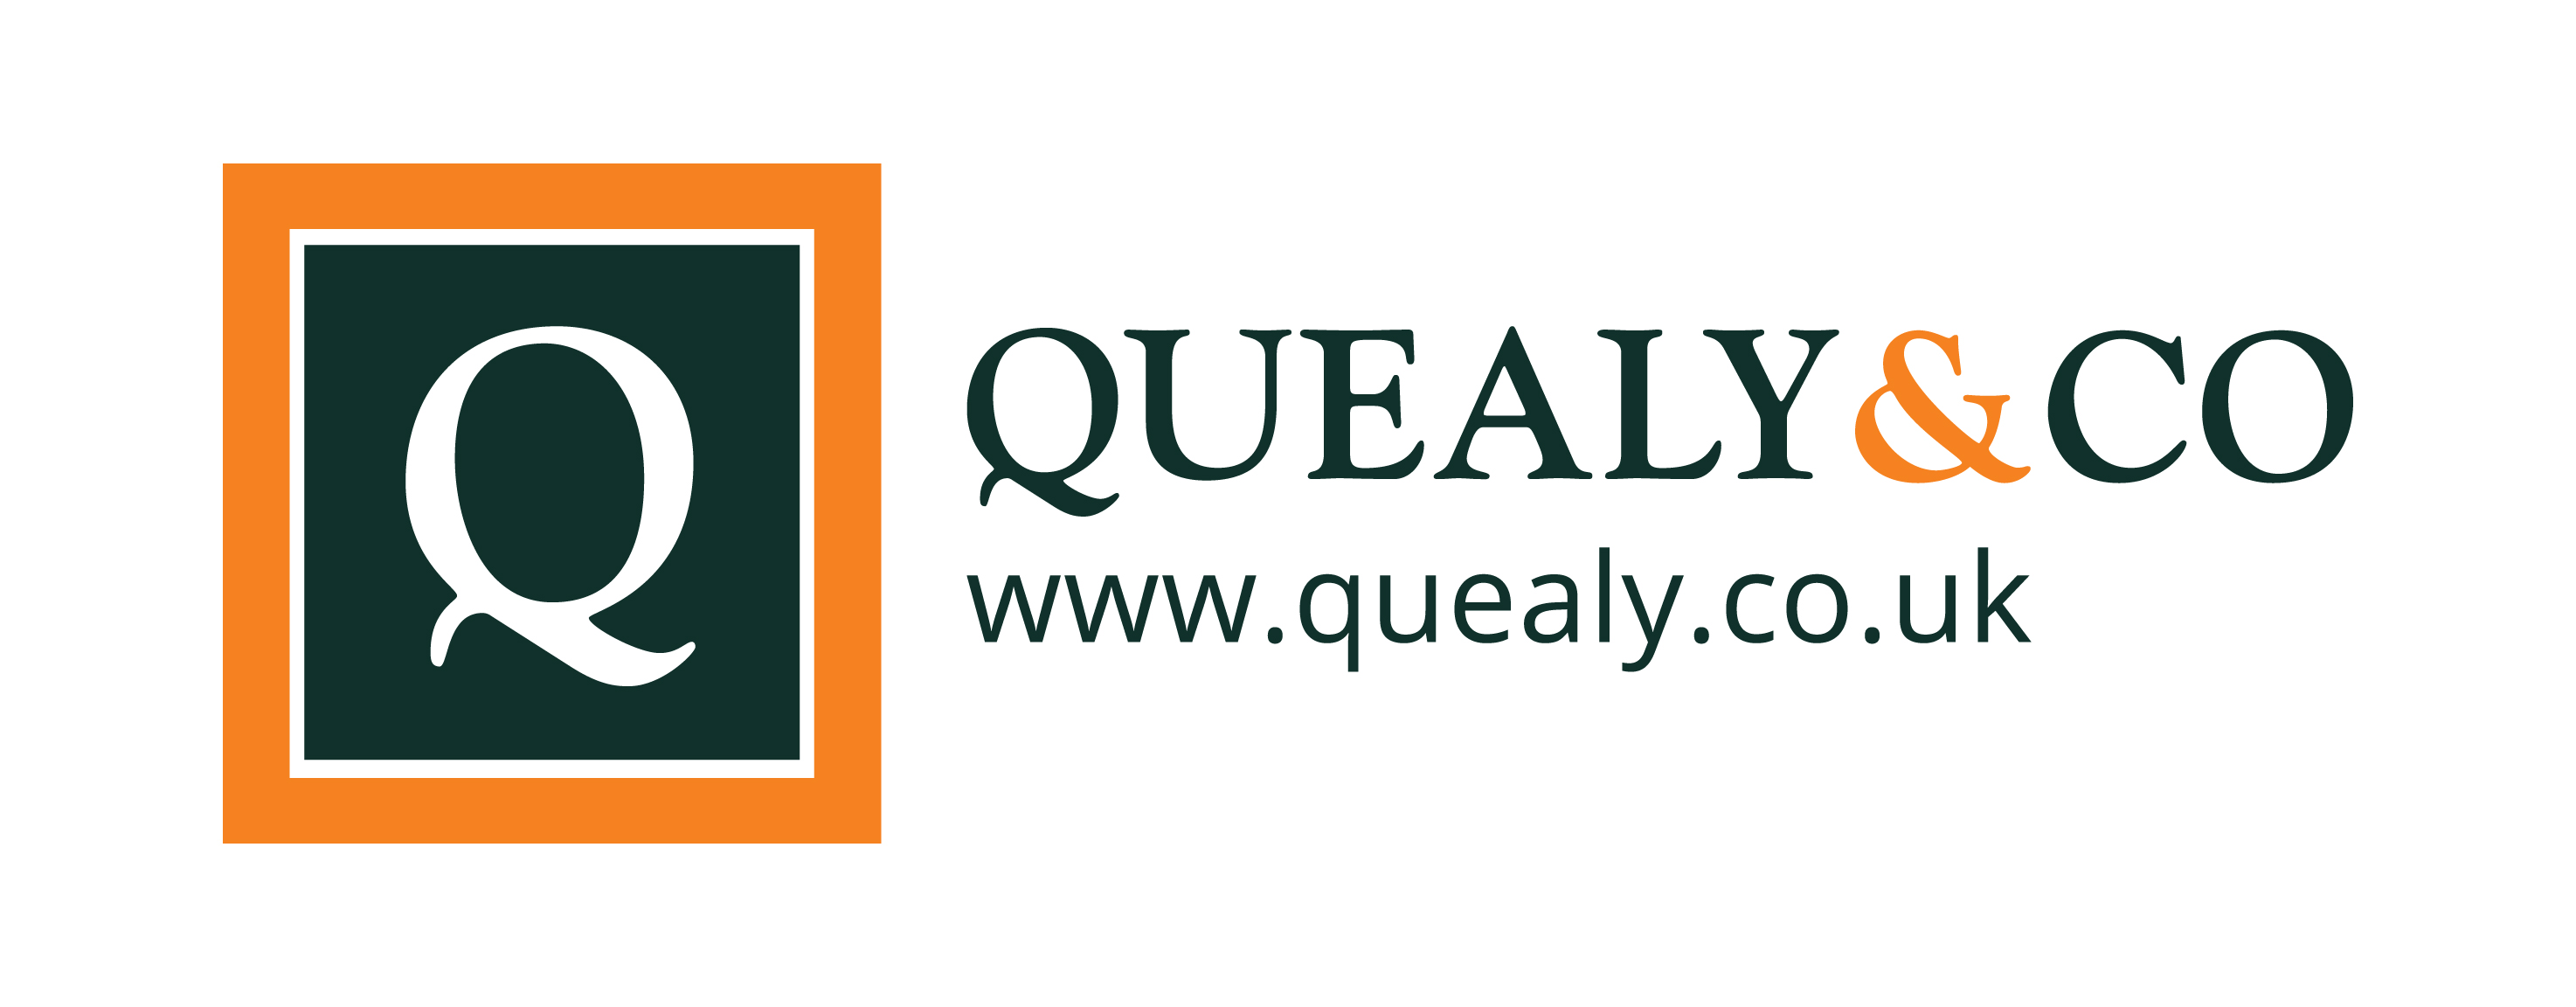 Quealy & Co